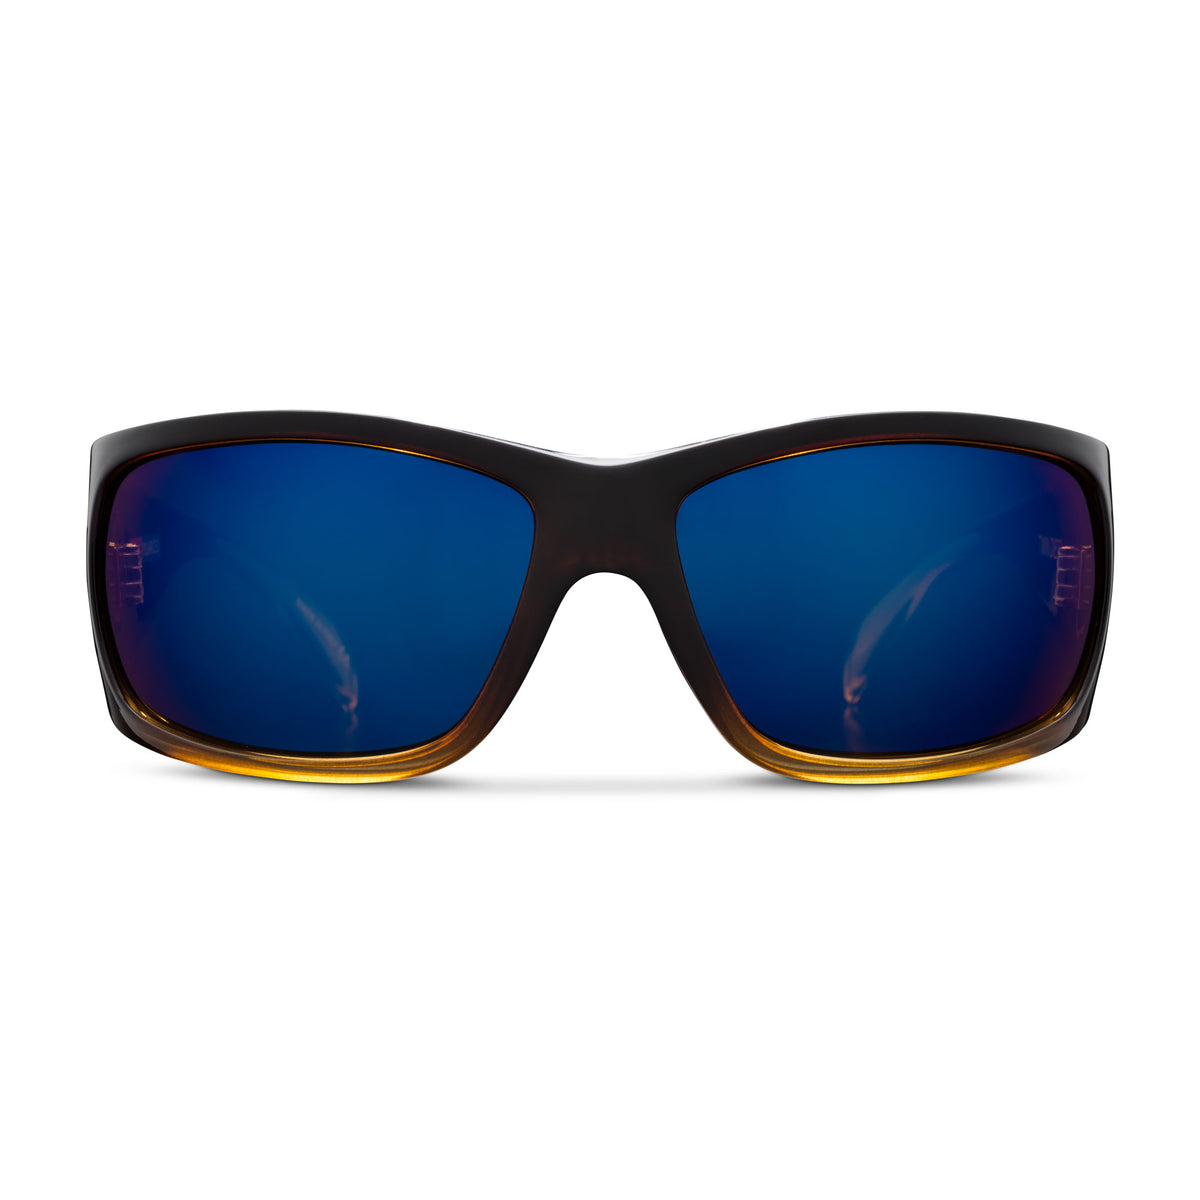 Twin Diesel - Polarized Polycarbonate Lens Big Image - 2